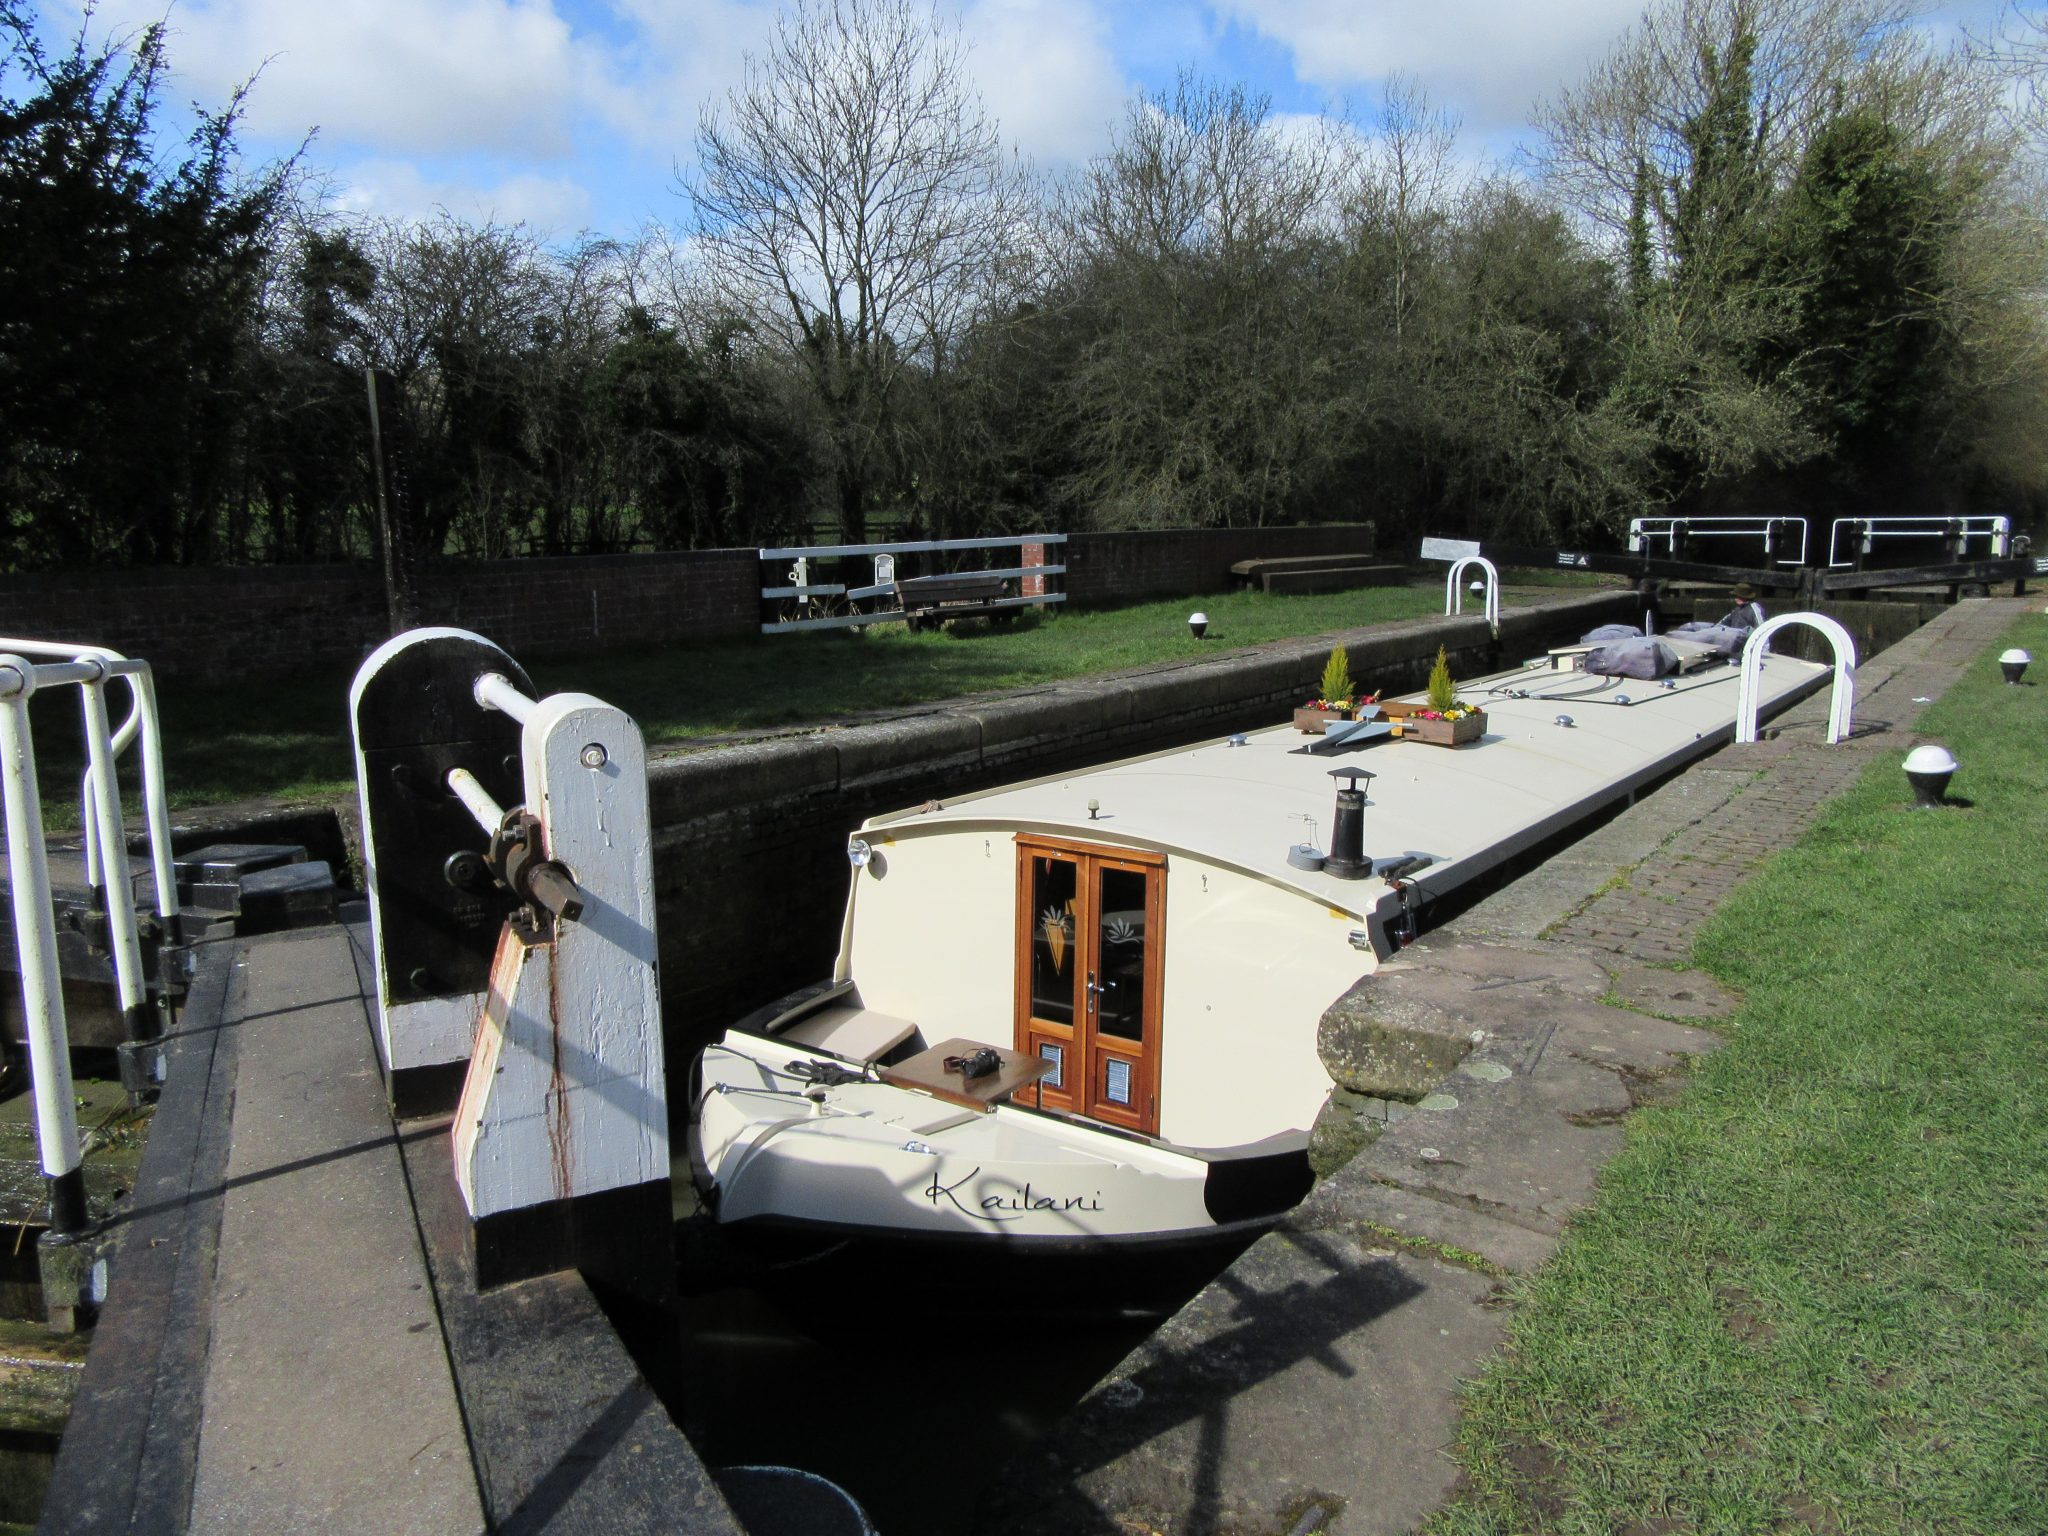 Hotel Boat Kailani in a lock on The Grand Union Canal